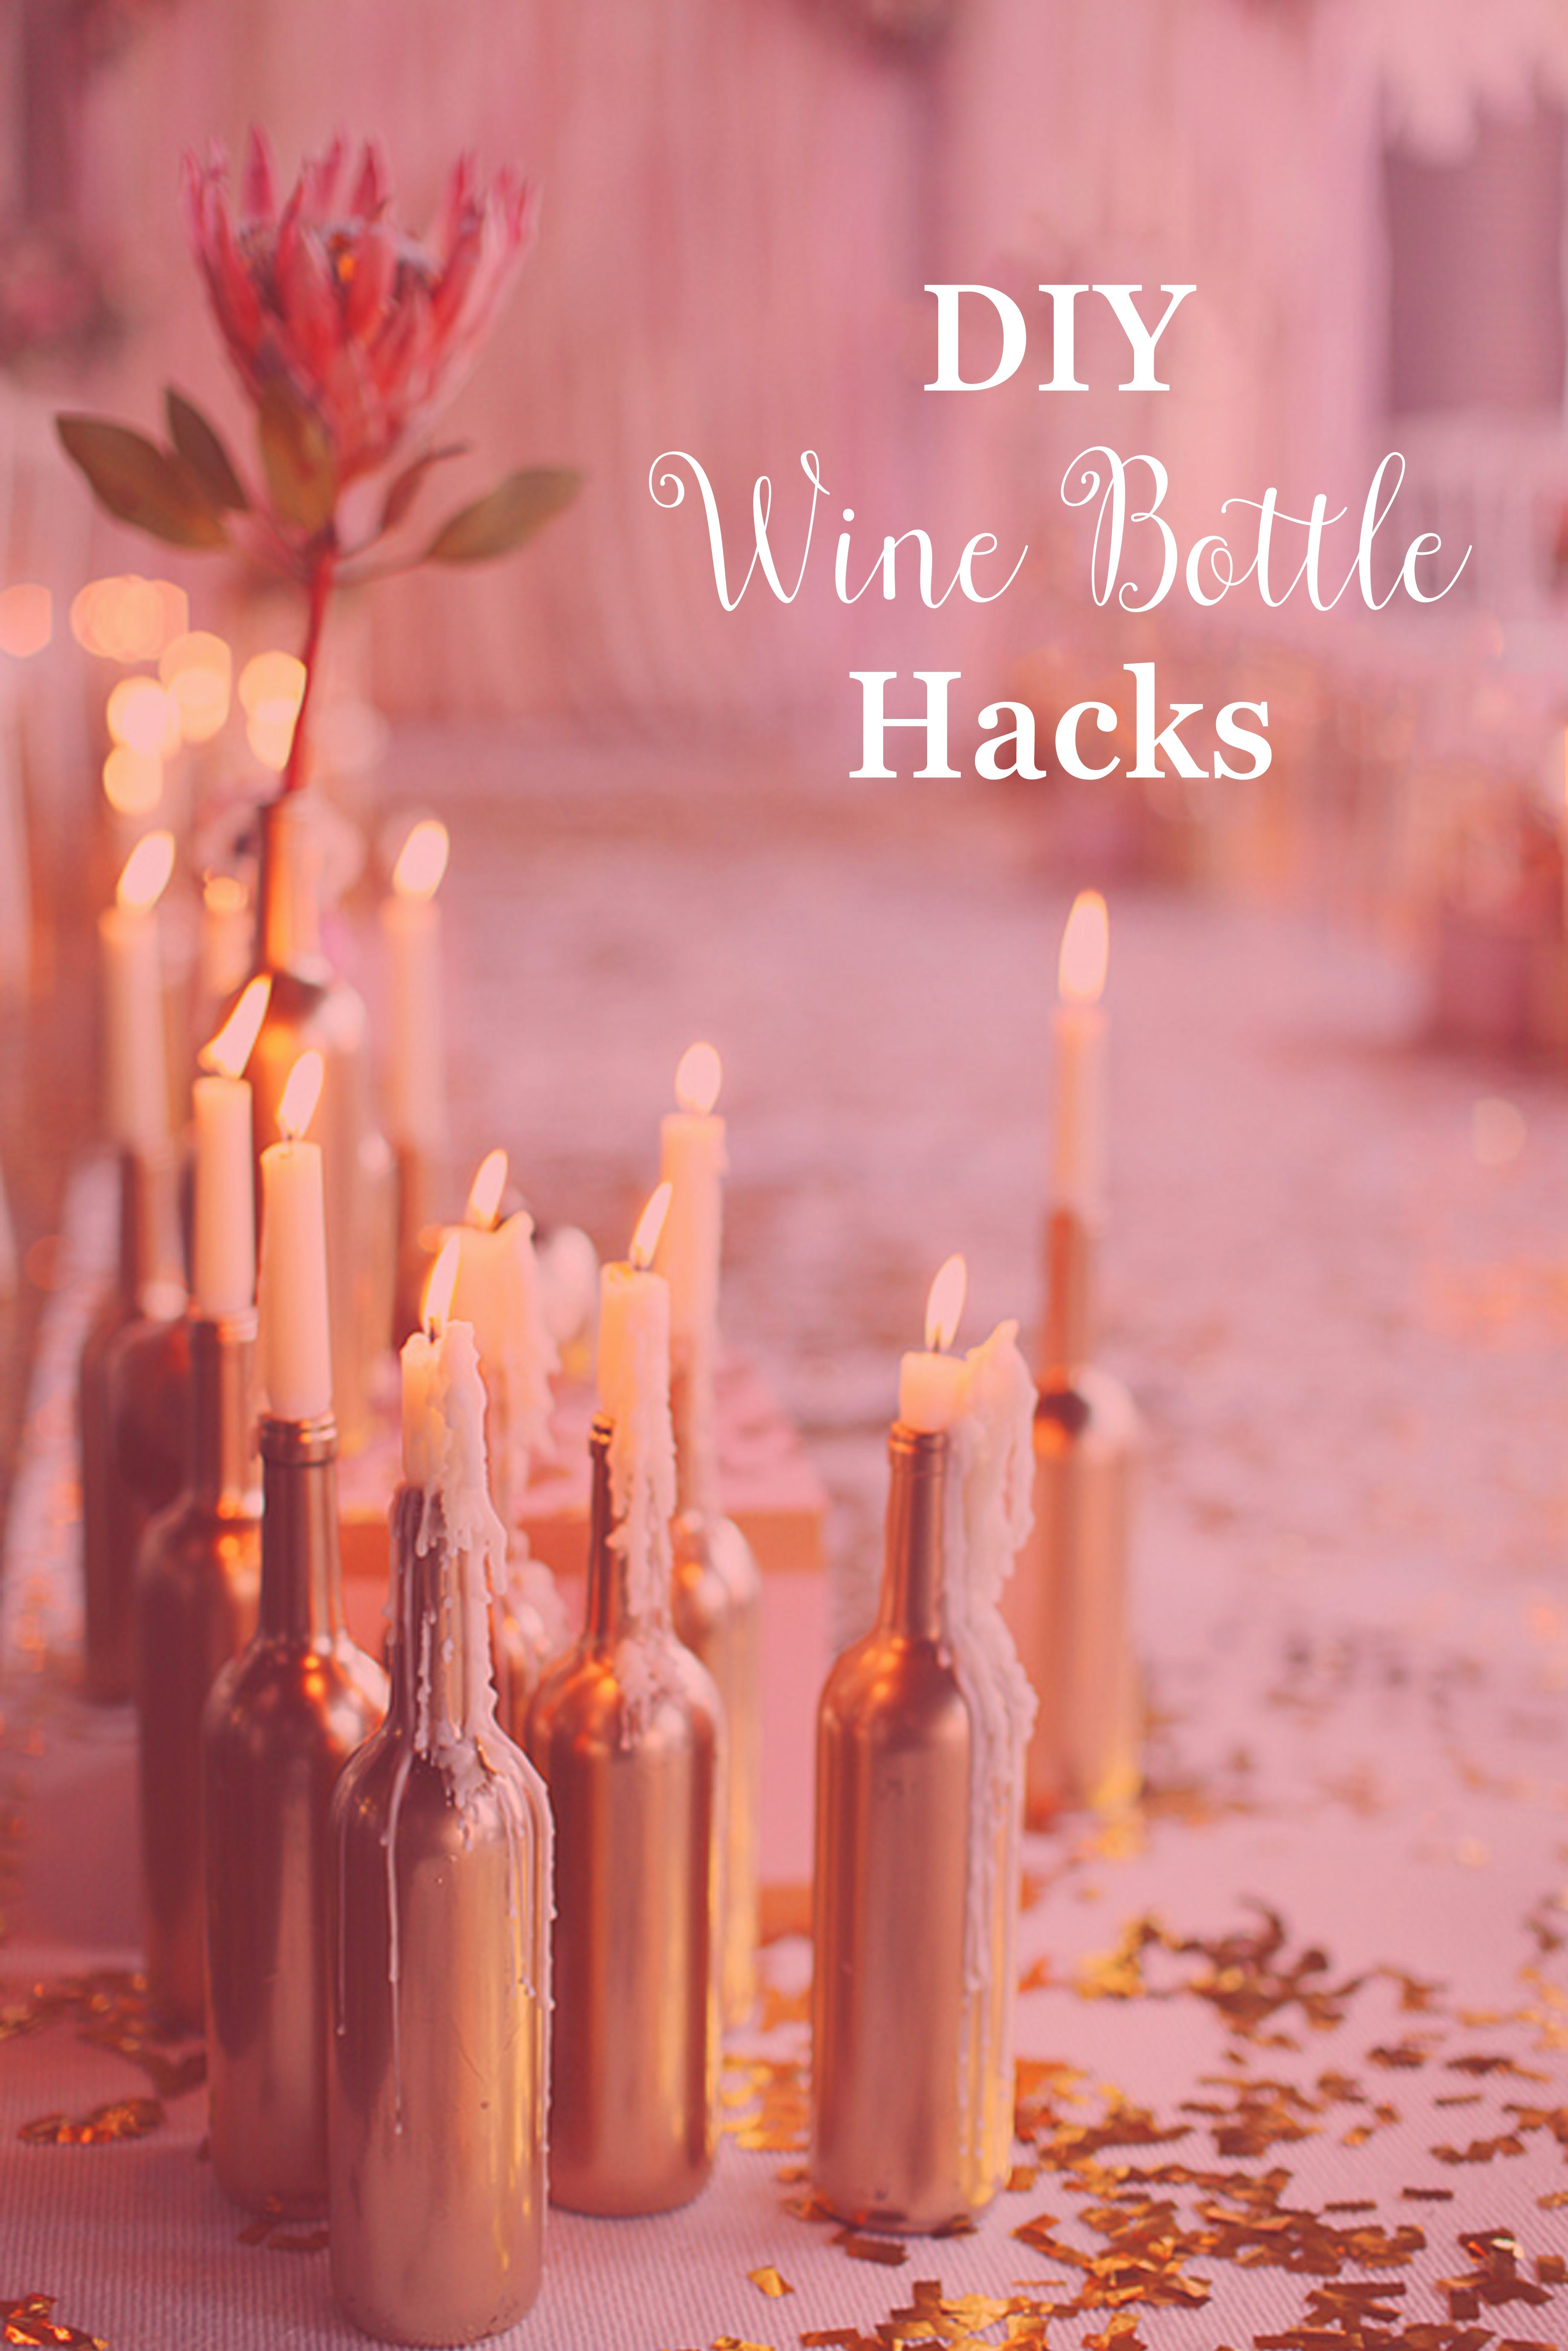 Do We Have Some Empty Wine Bottles Laying Around Um Yes We Definitely Do Check Out An Awesome H Wedding Candles Winter Engagement Party Wedding Decorations